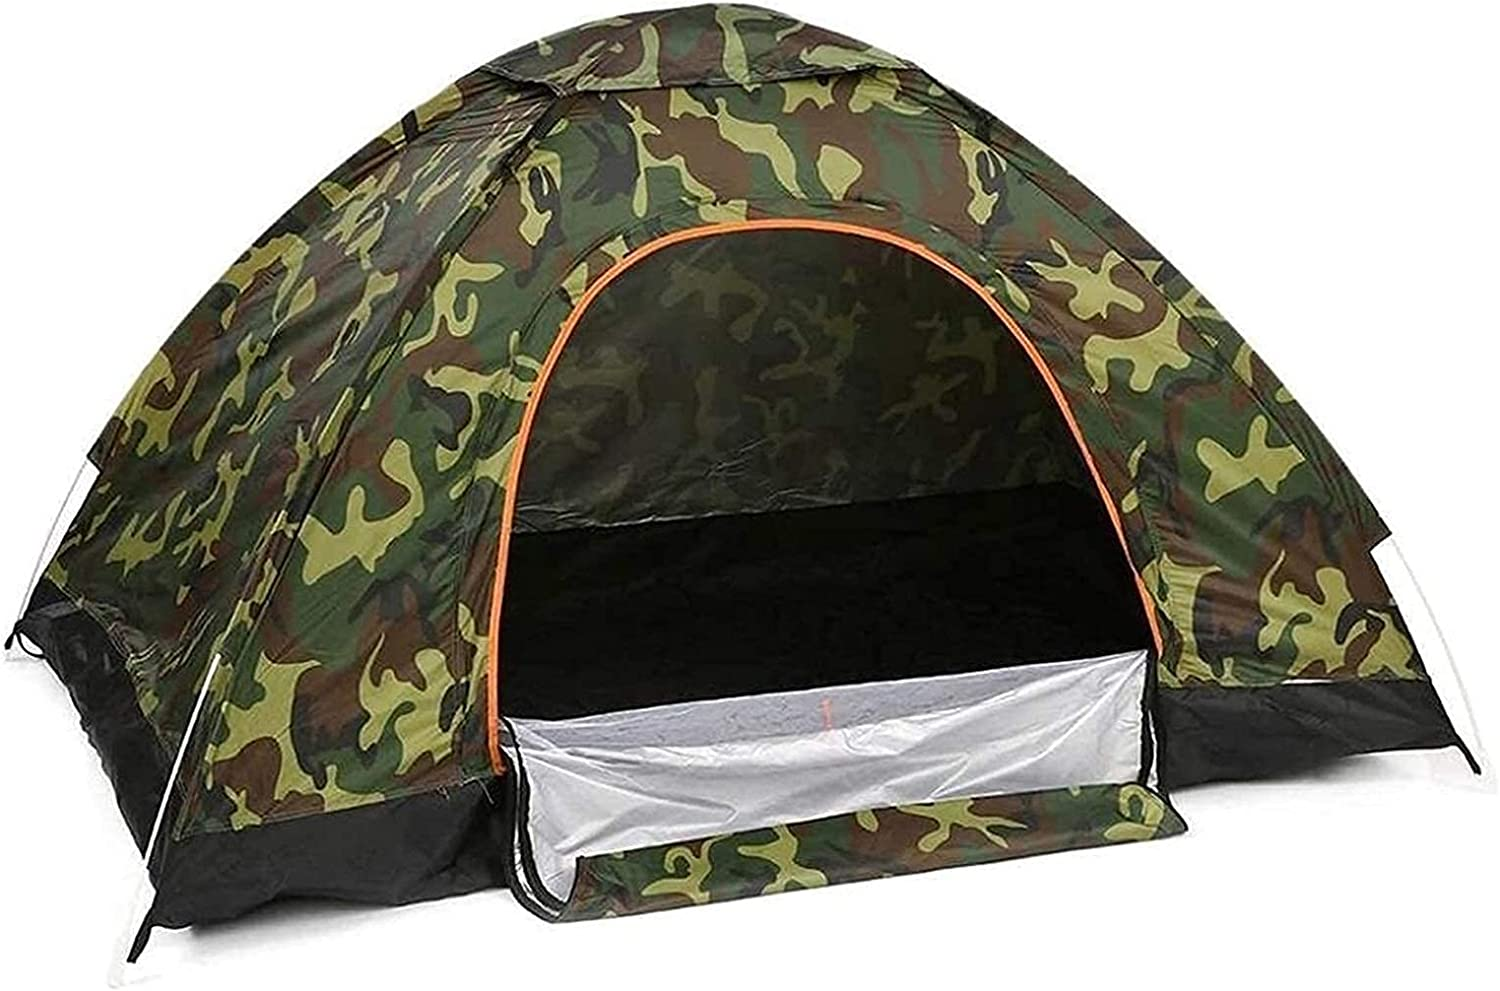 Furren Max 70% OFF Tents for Camping Inexpensive Family Outdoor Tent Waterproof